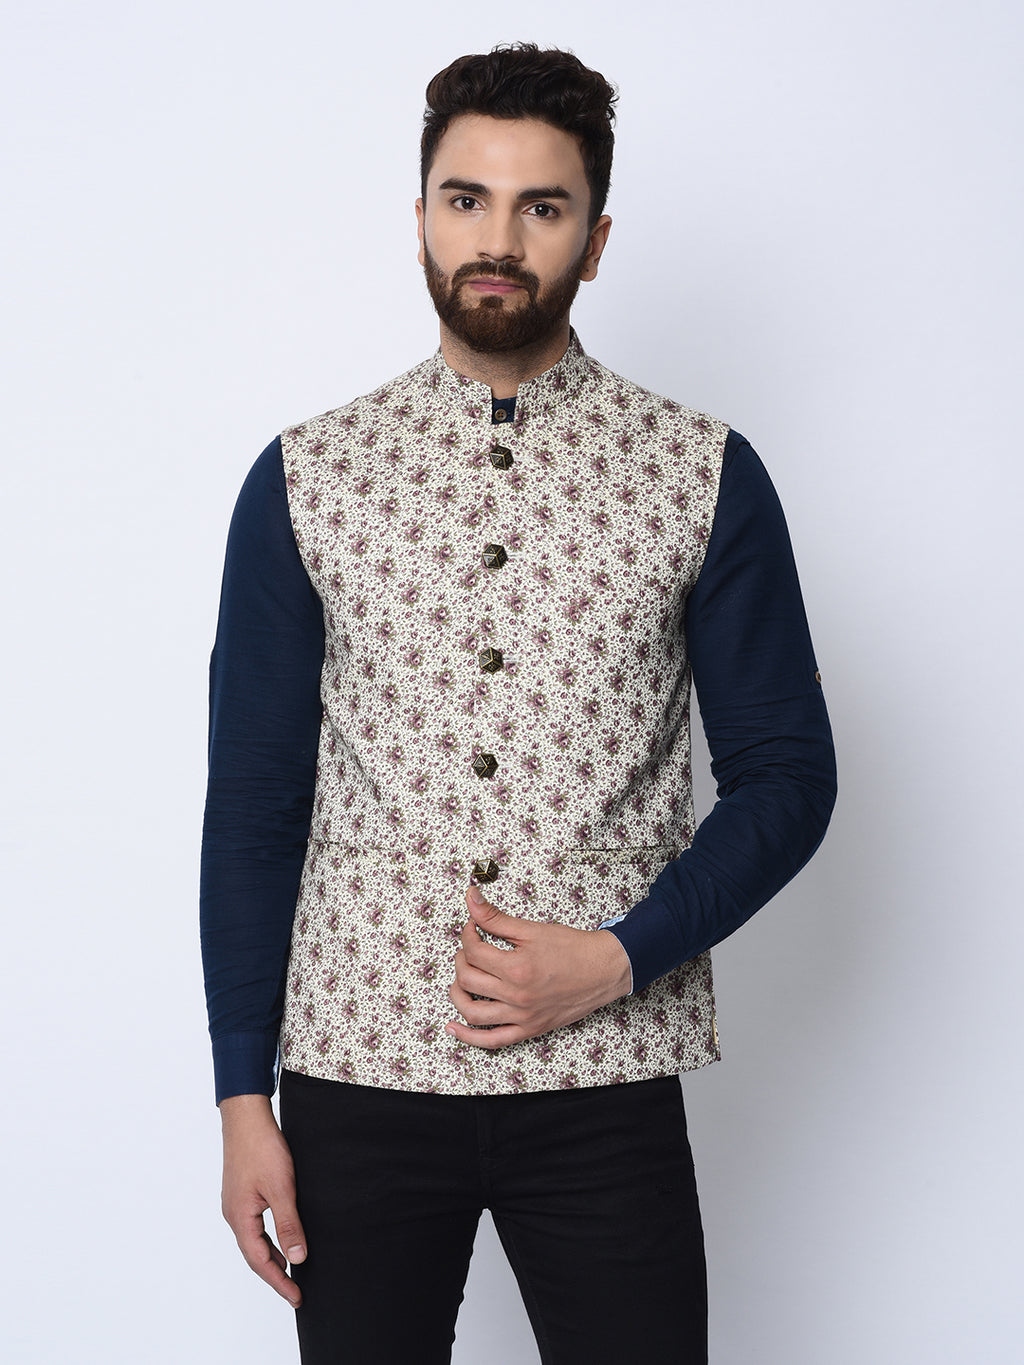 Old World Chap Bundi Jacket